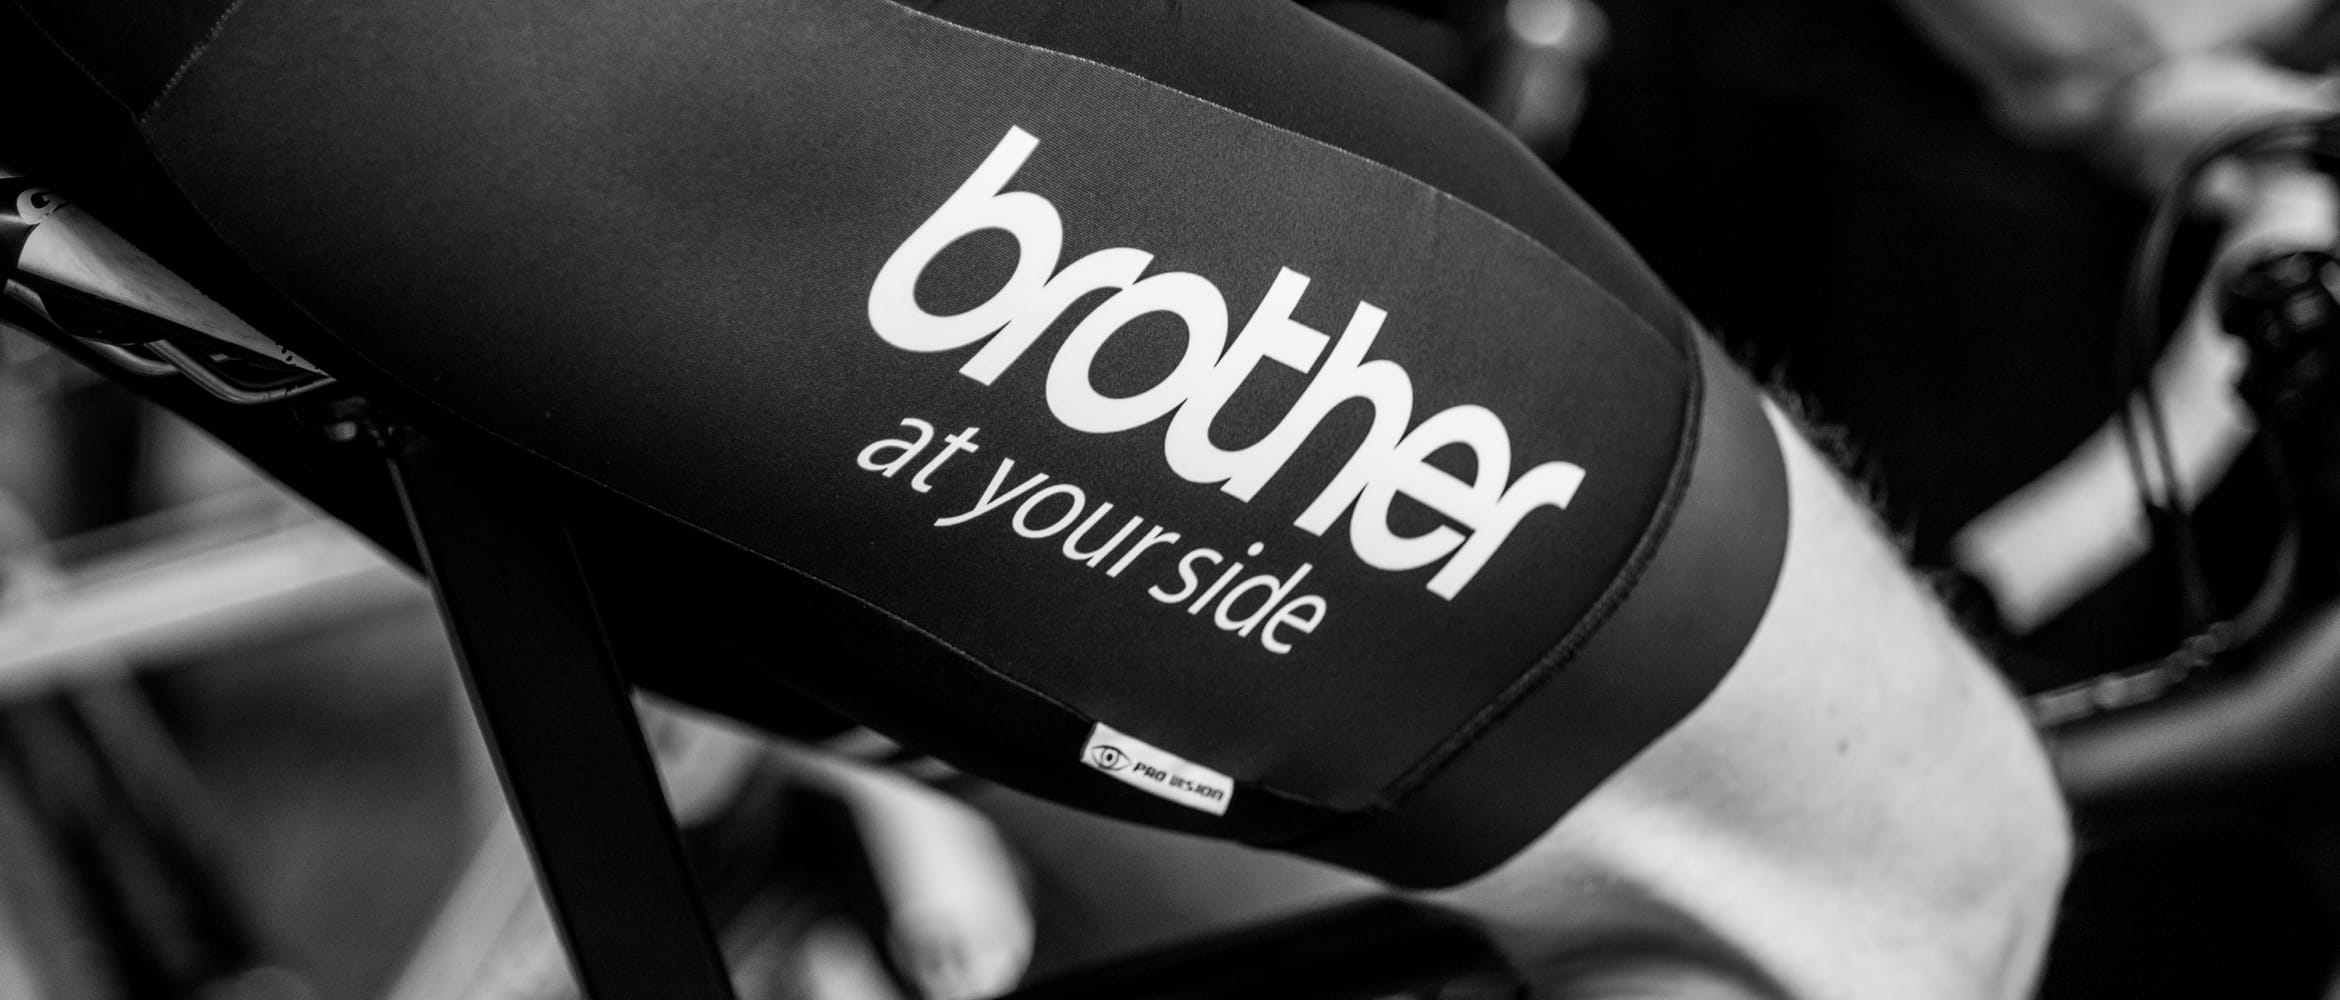 cyclist peddles in Brother branded kit